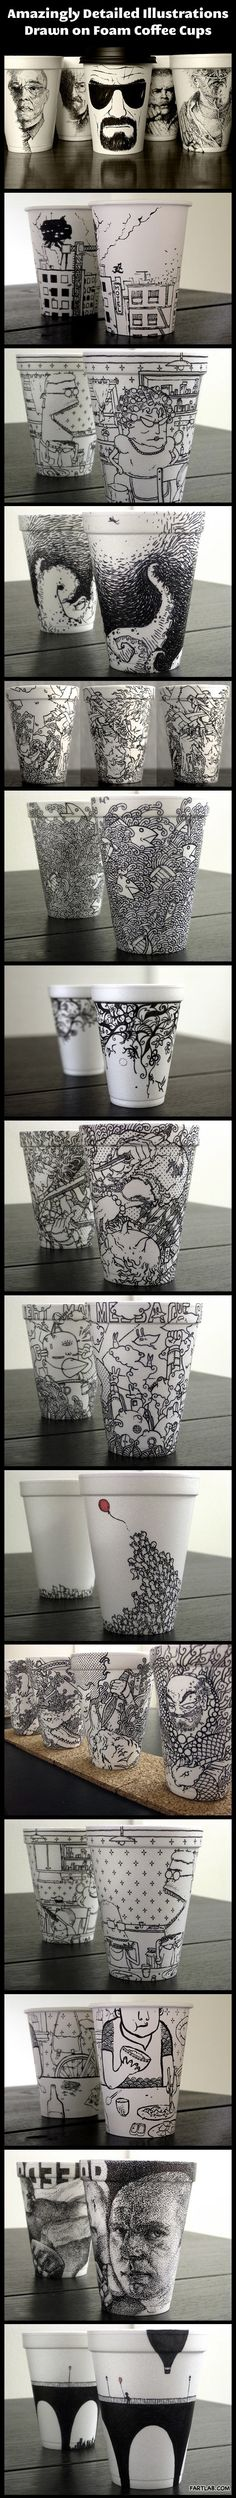 Awesome foam coffee cup designs, but would see them on sustainable products: recycled wood, potting planters, or frames would be cool!